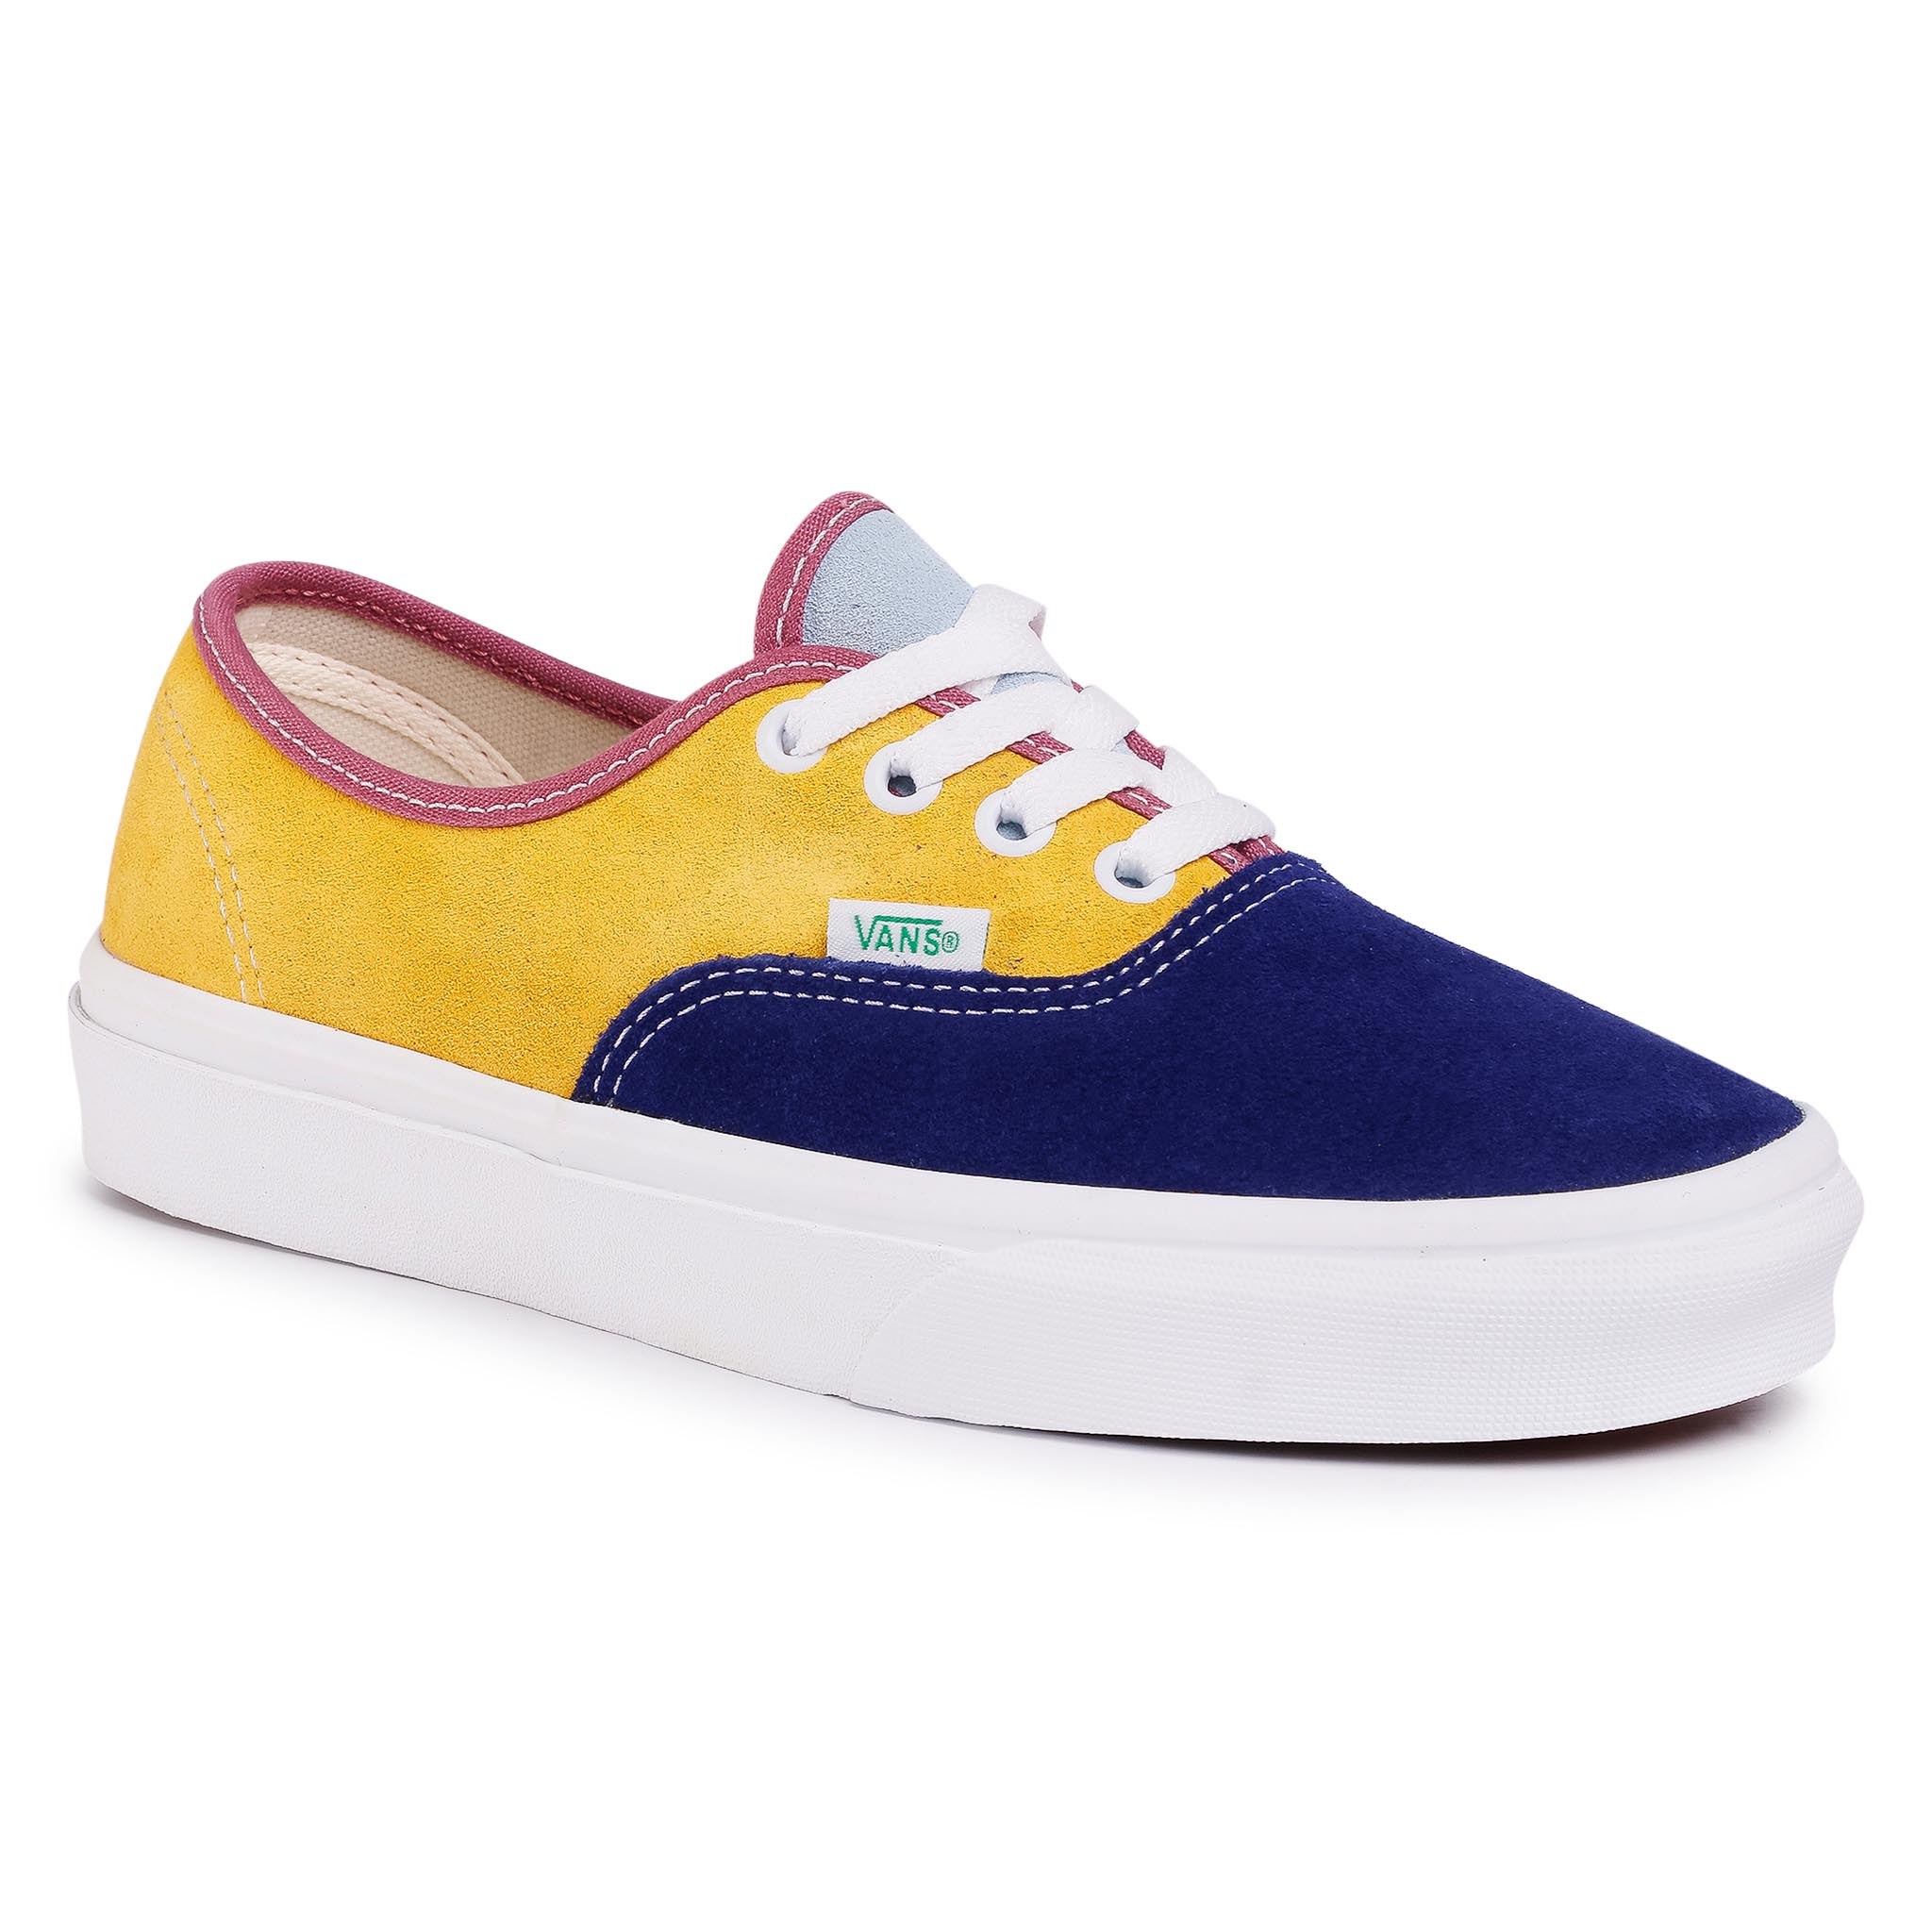 Teniși VANS - Authentic VN0A2Z5IWNY1 (Sunshine) Multi/Tr Wht